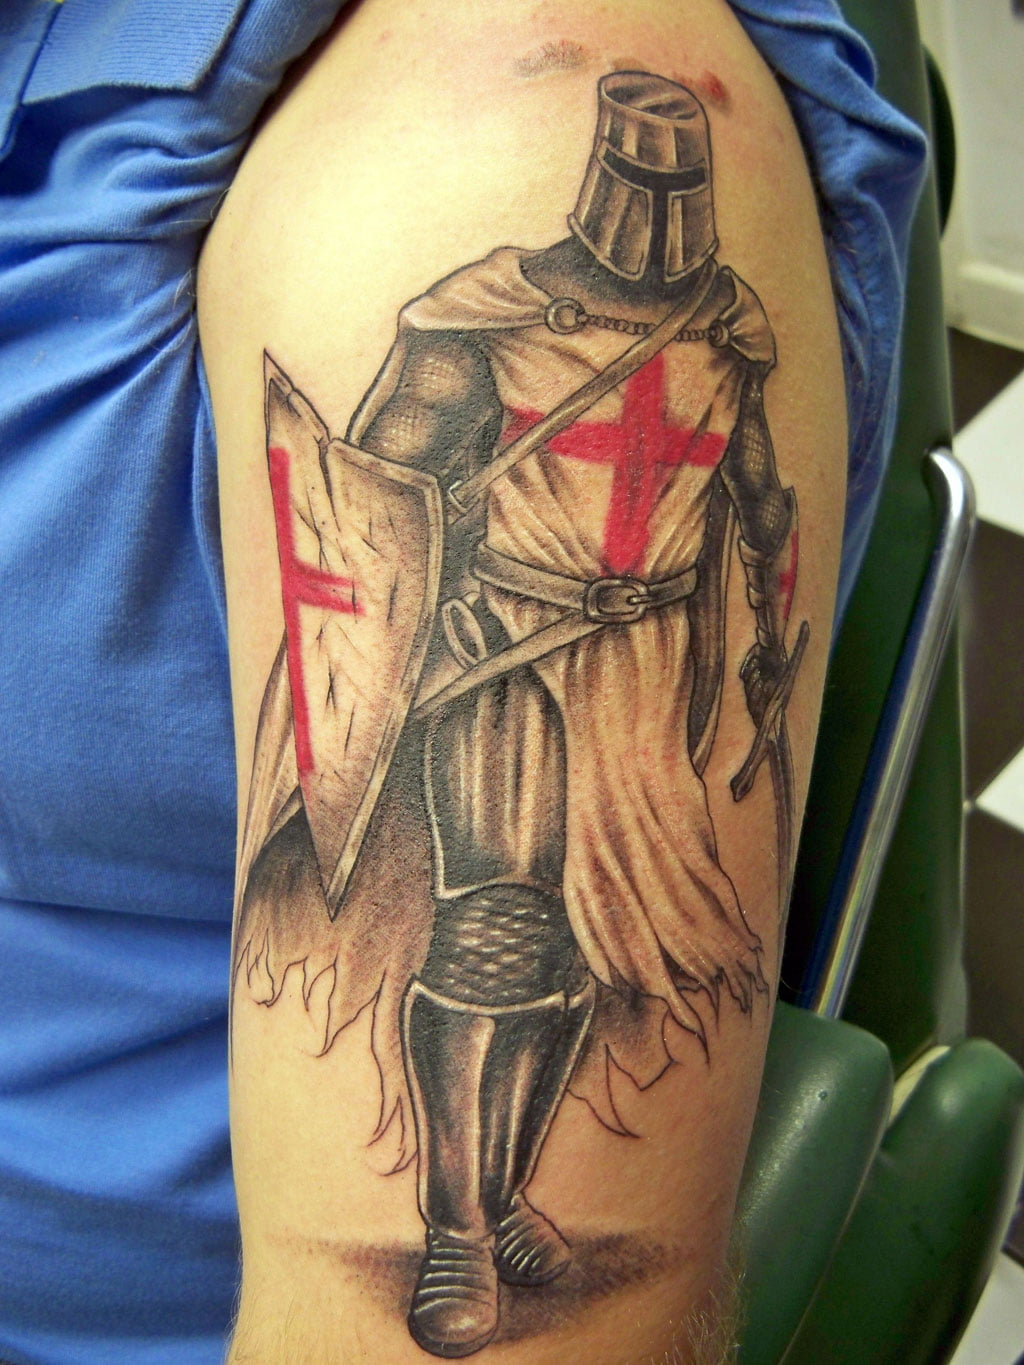 knights templar cross tattoo cool tattoos bonbaden. Black Bedroom Furniture Sets. Home Design Ideas